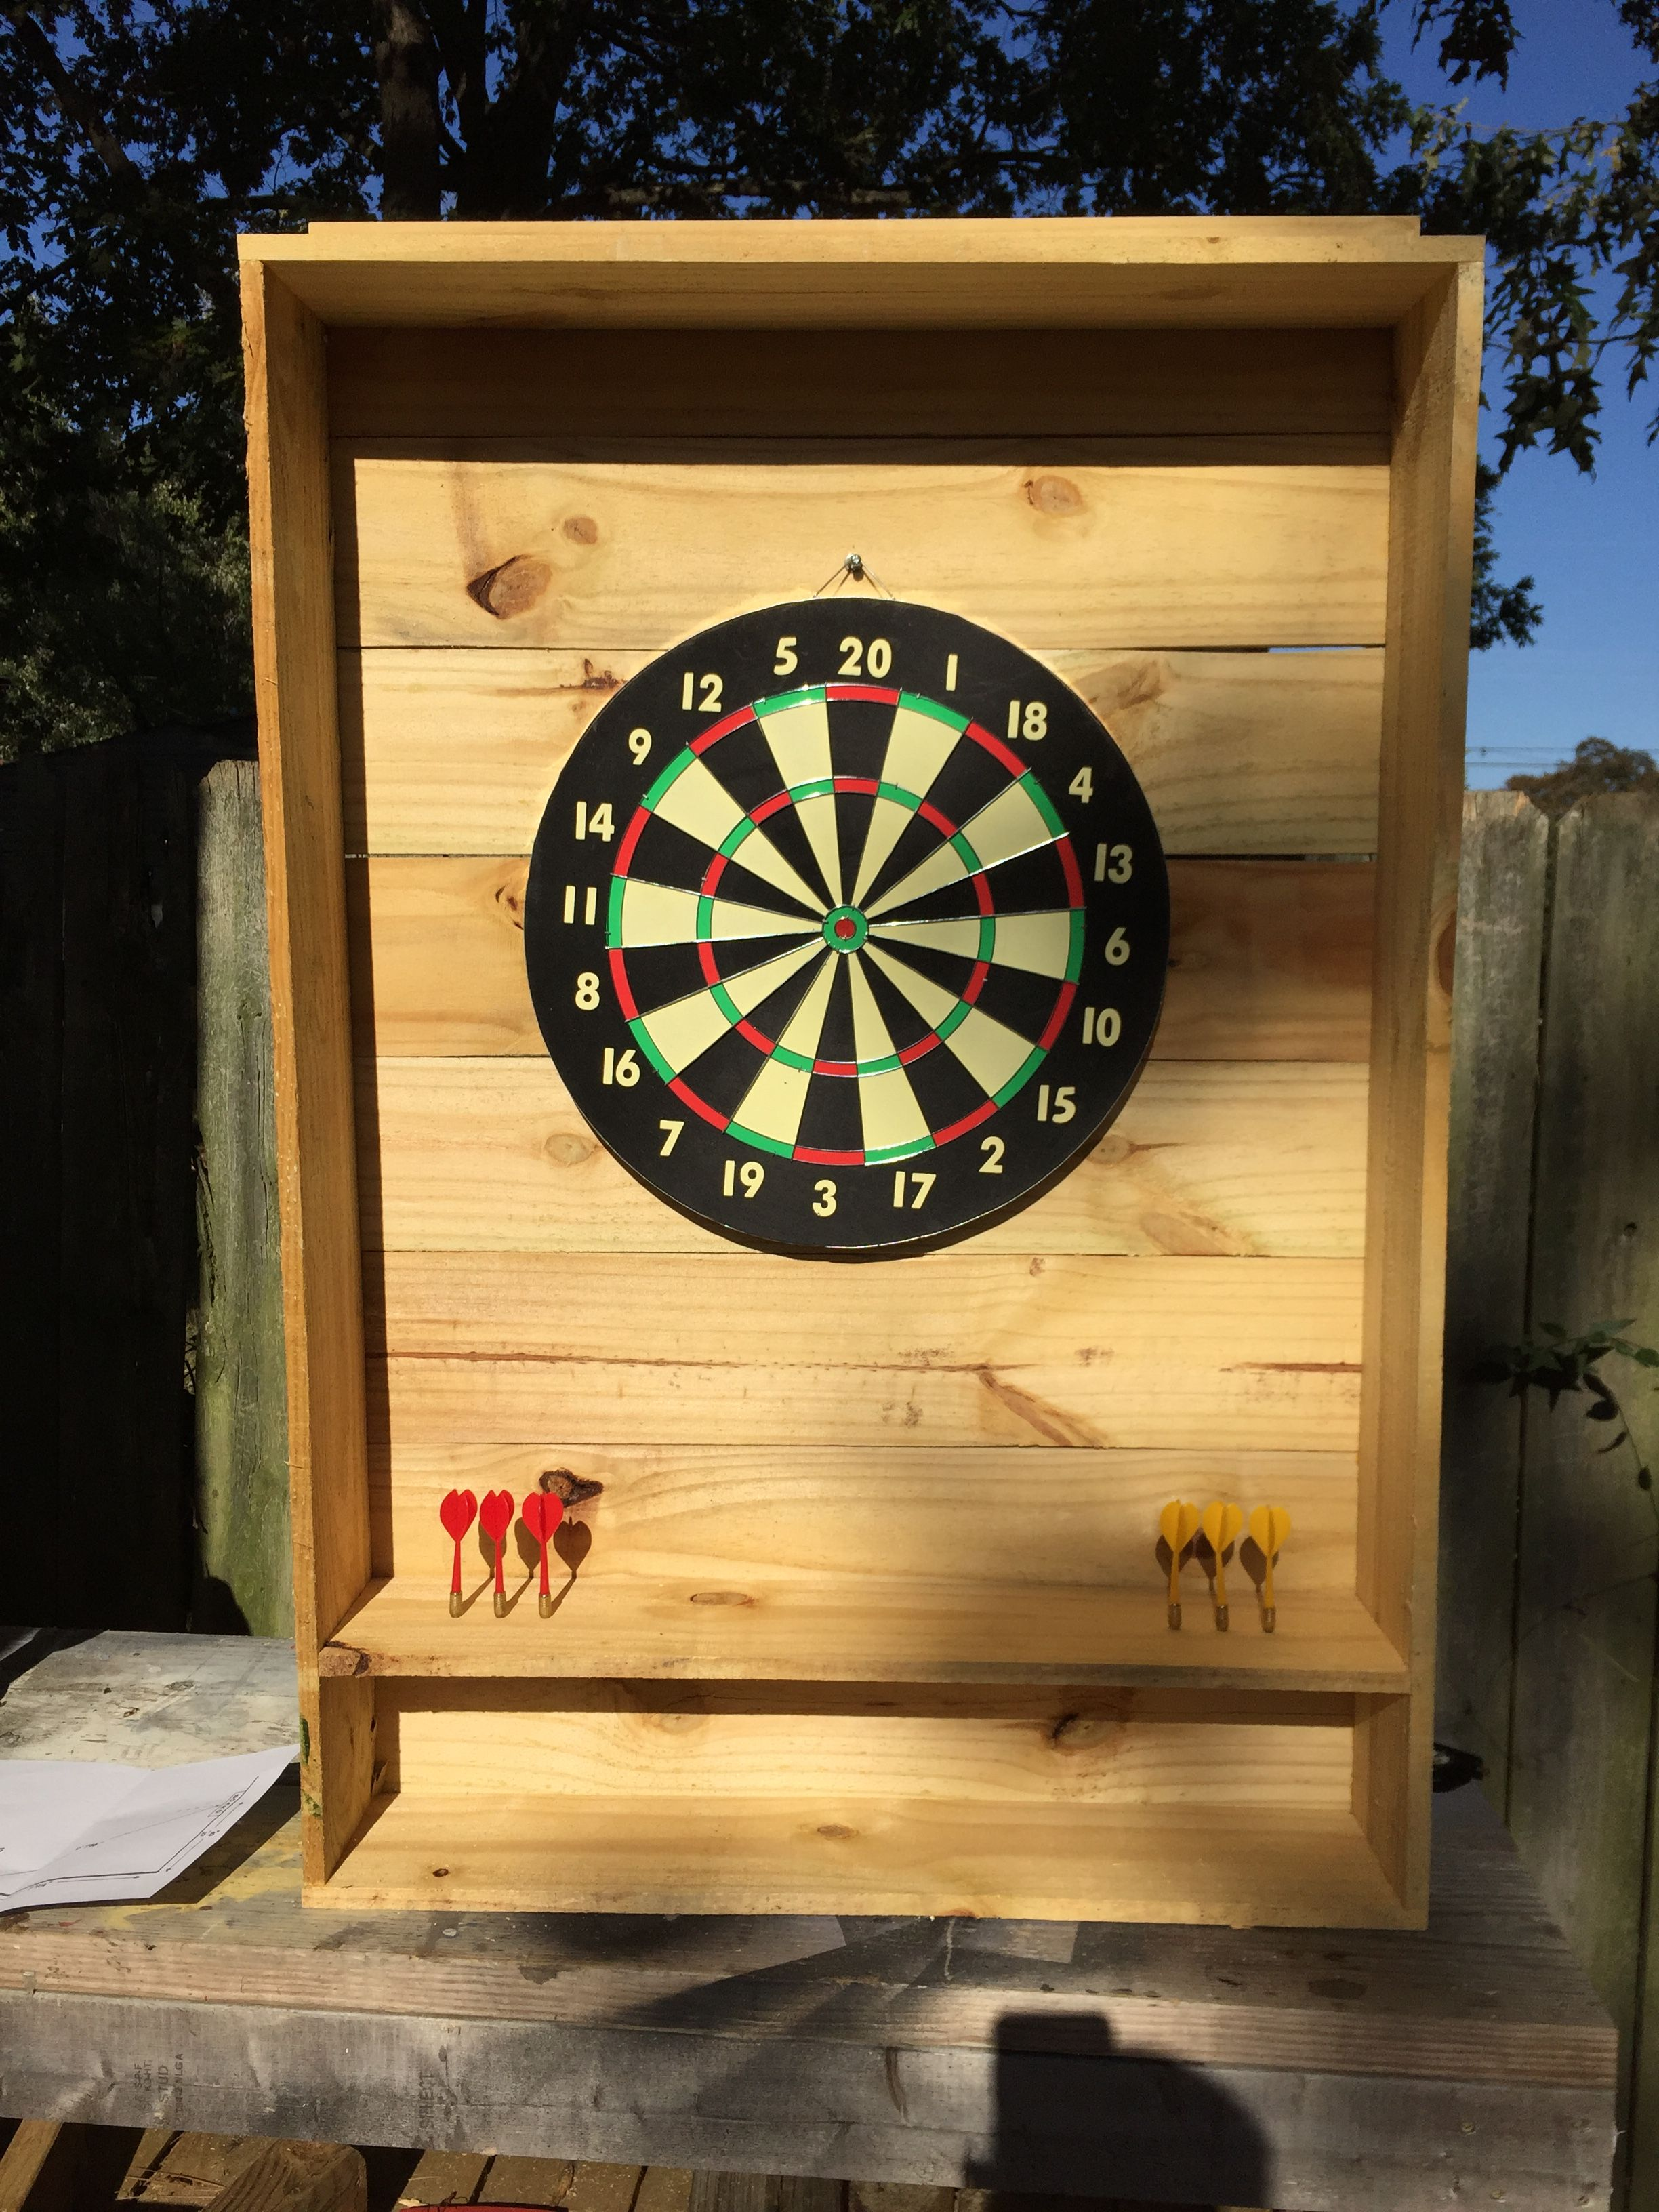 Diy outdoor dart board man cave pinterest dart board darts diy outdoor dart board solutioingenieria Gallery